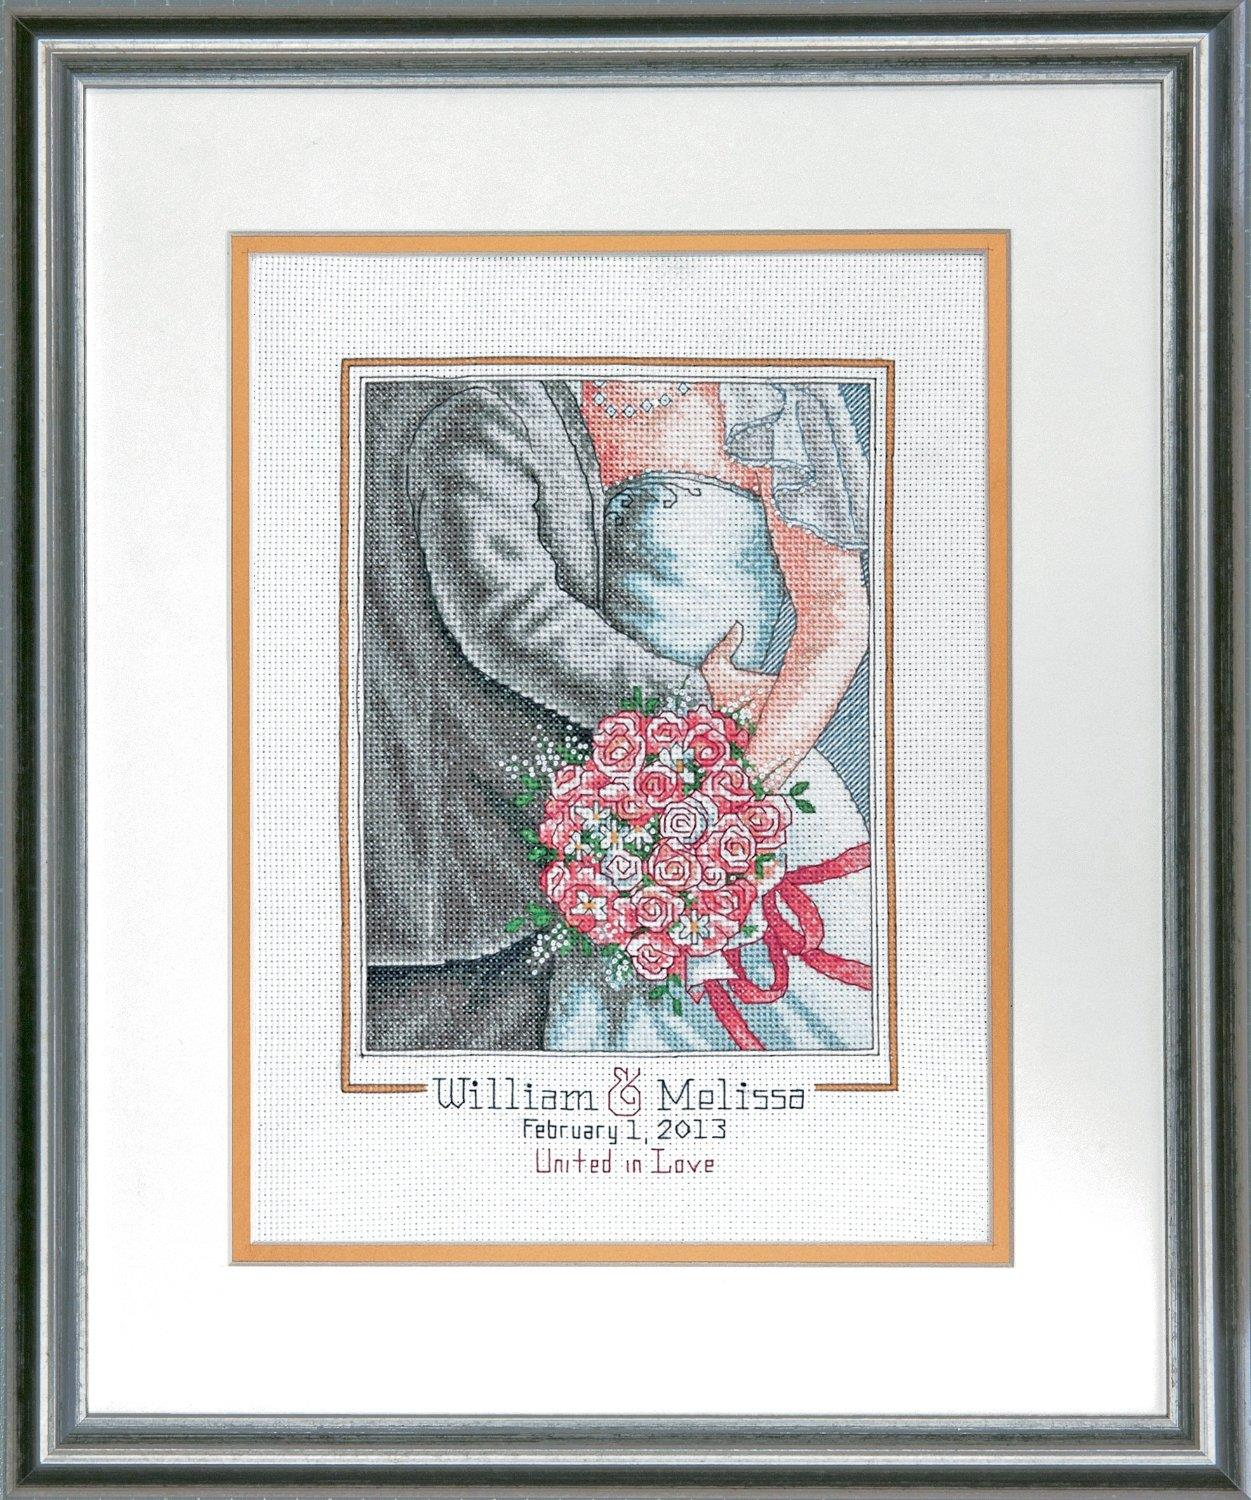 10x10 Embrace Wedding Record Embroidery Kit